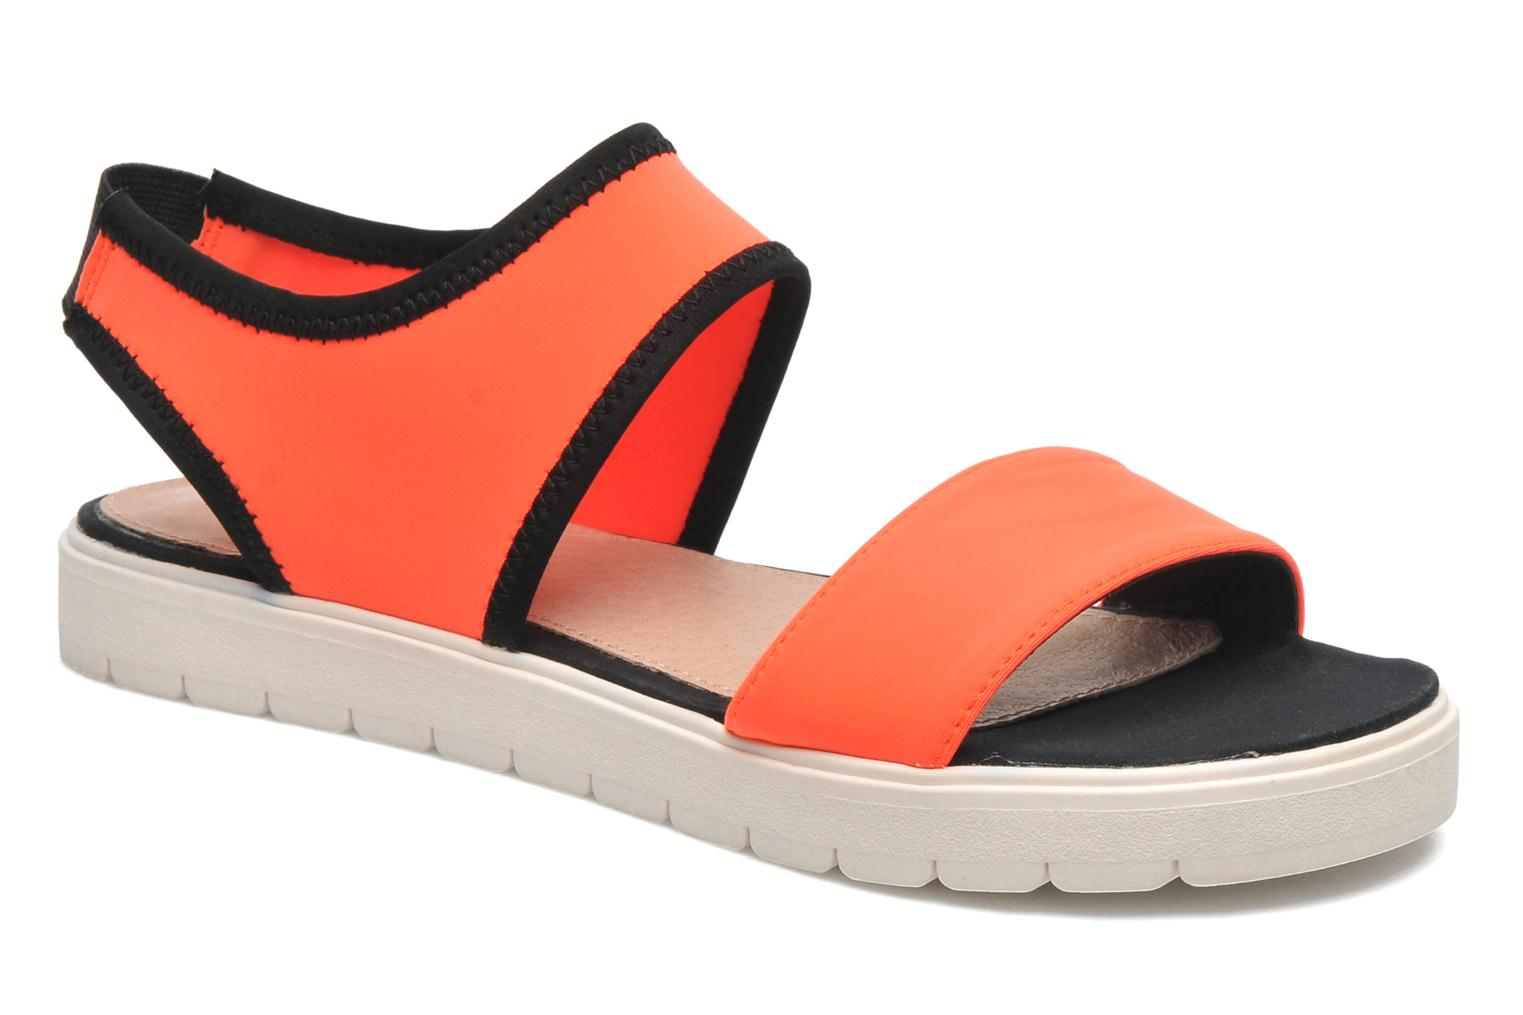 Marques Chaussure femme Steve Madden femme PRESSIN NEON CORAL MULTI